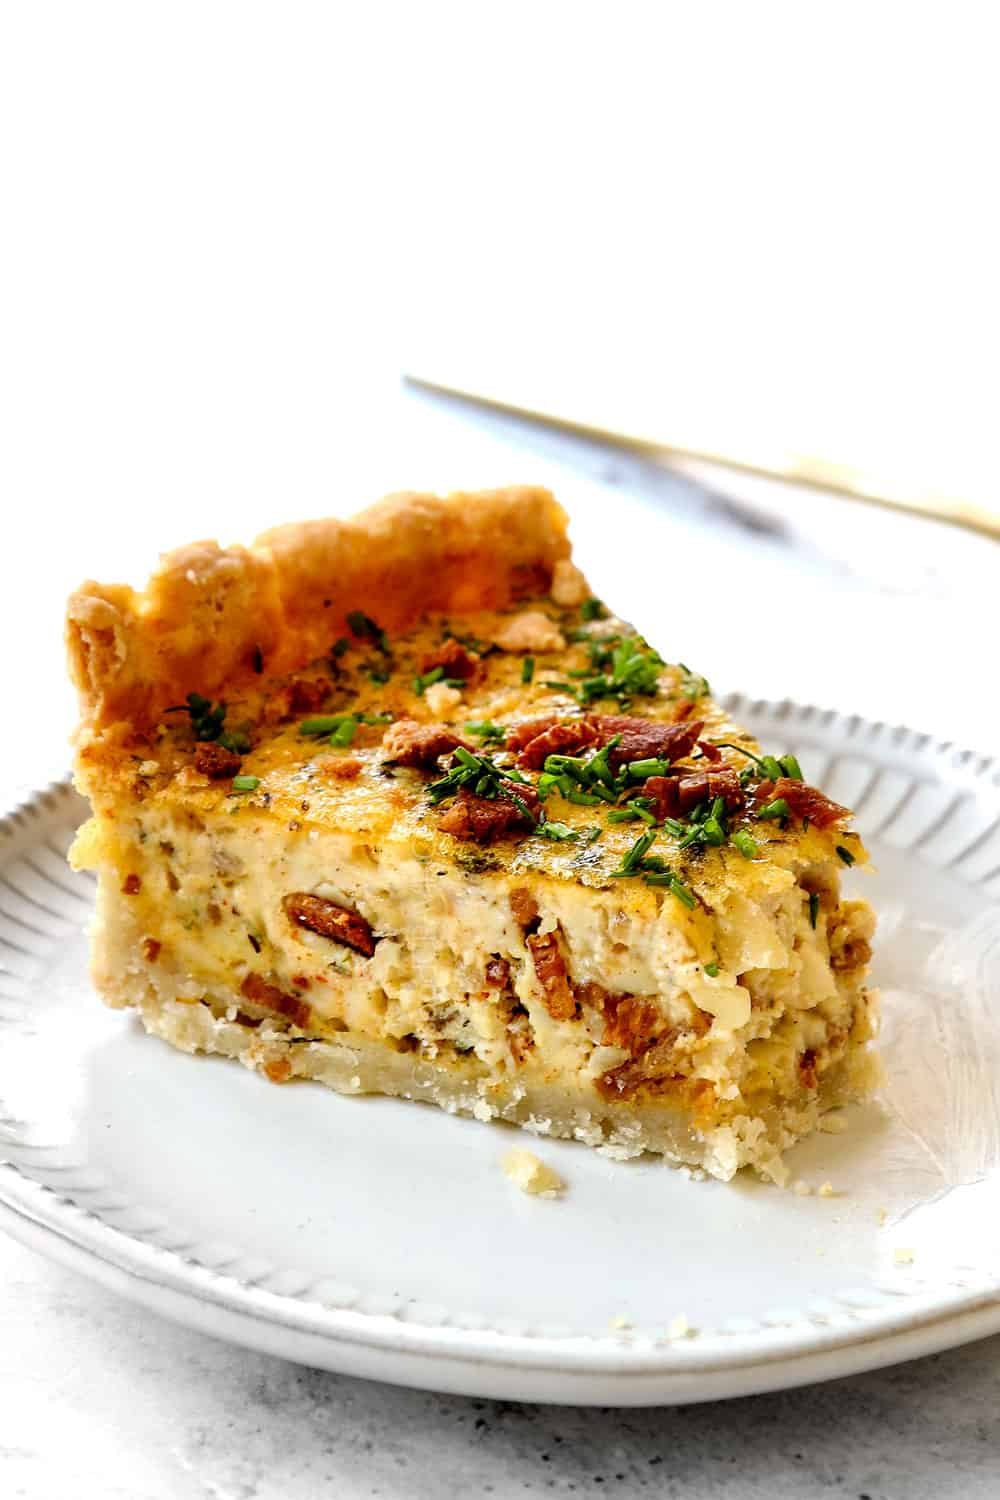 up close of best Quiche Lorraine with a bite taken out of it